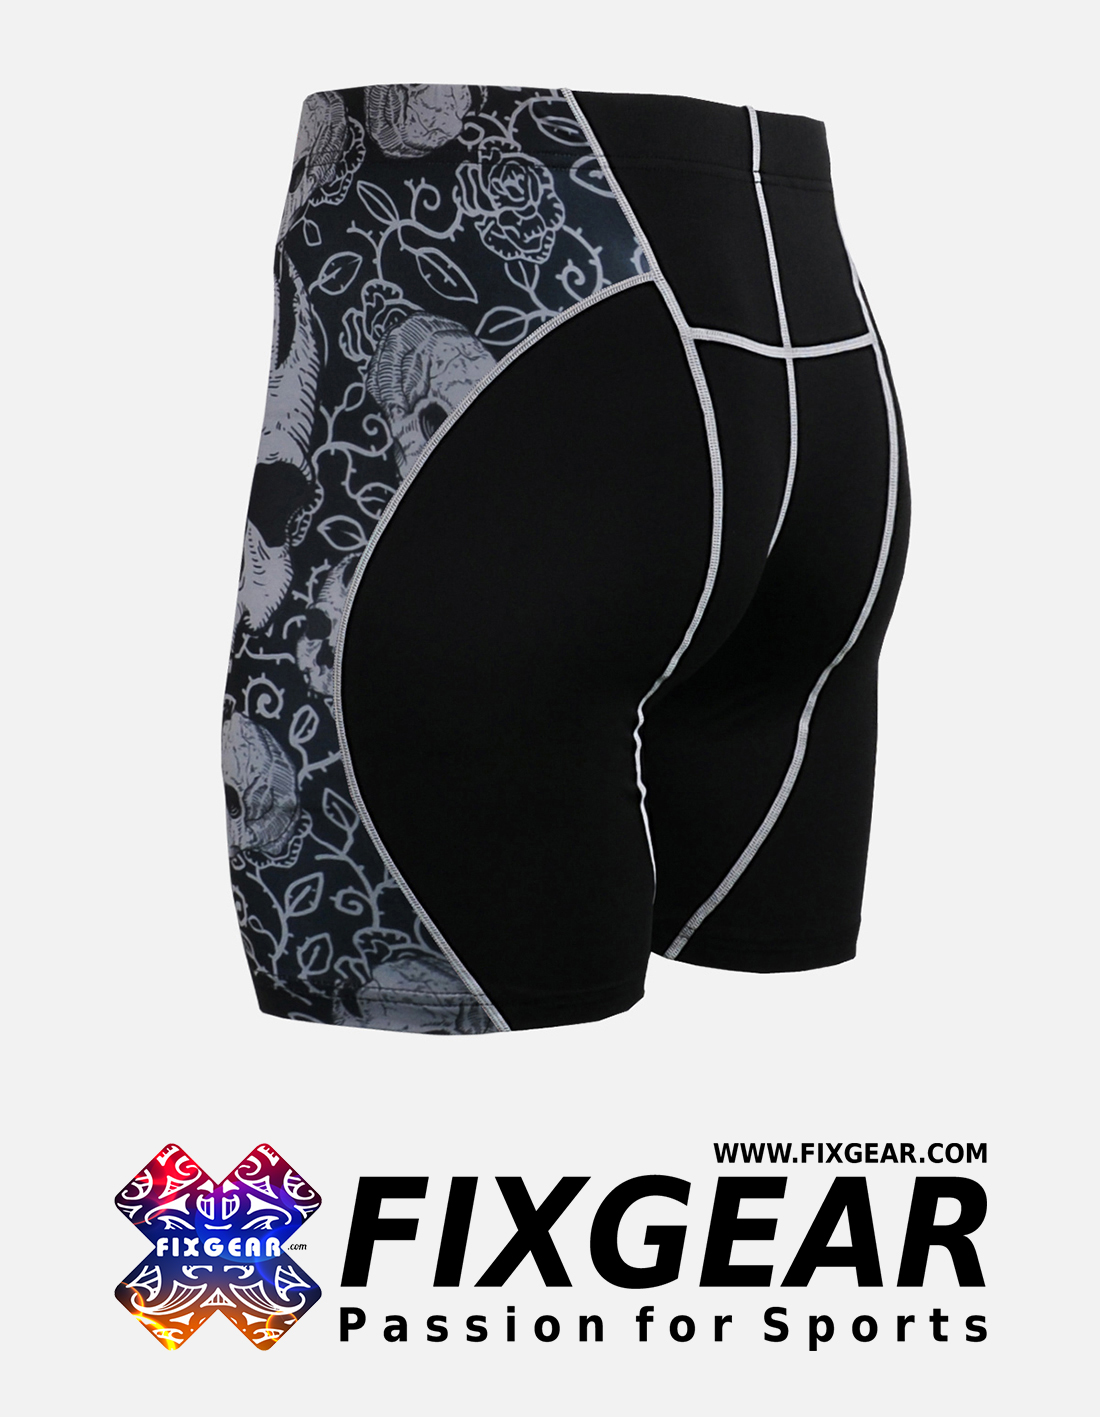 FIXGEAR P2S-B40 Compression Drawer Shorts